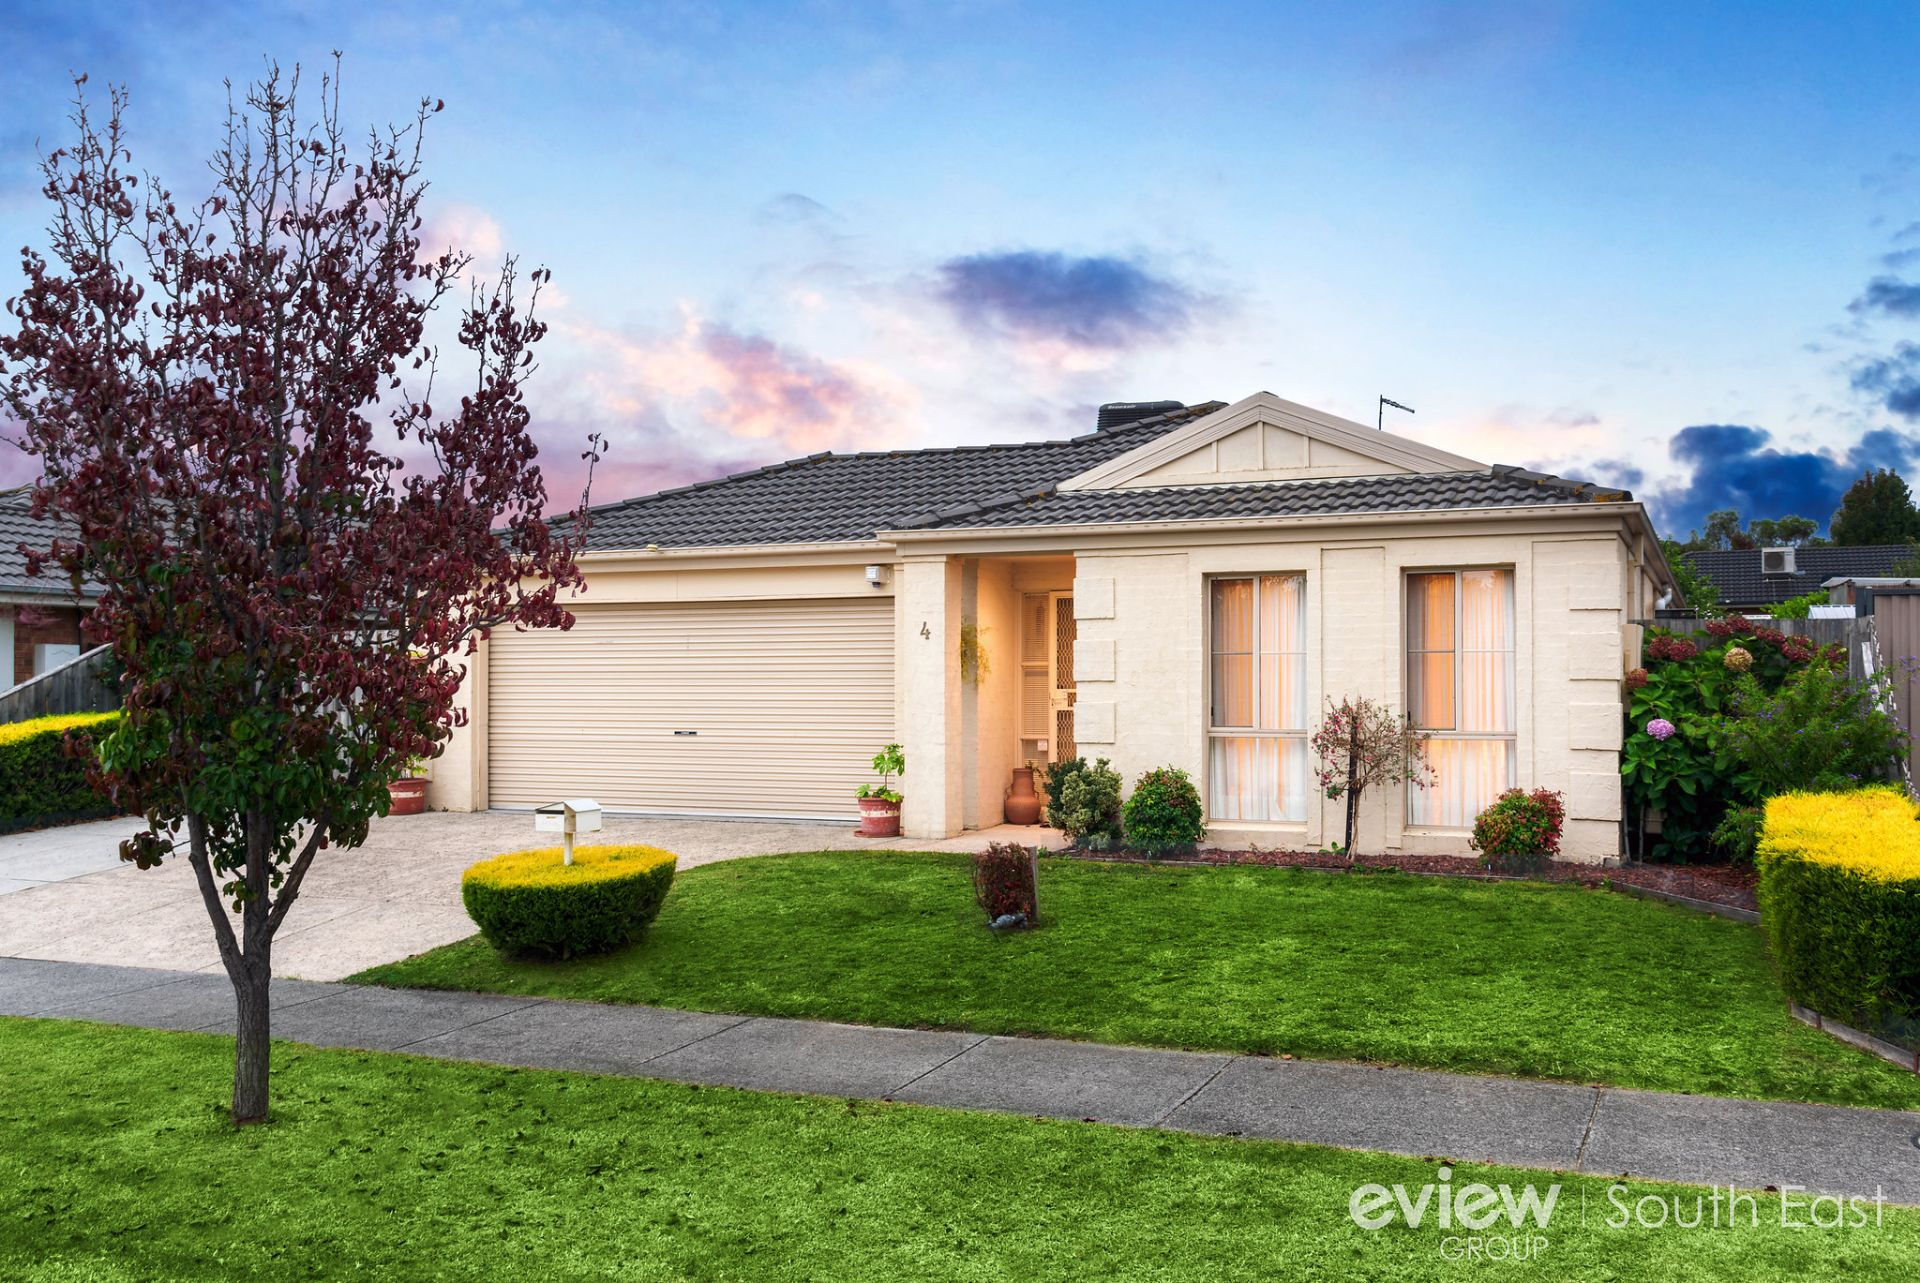 4 Minak Close, NARRE WARREN SOUTH, VIC, 3805 - Image